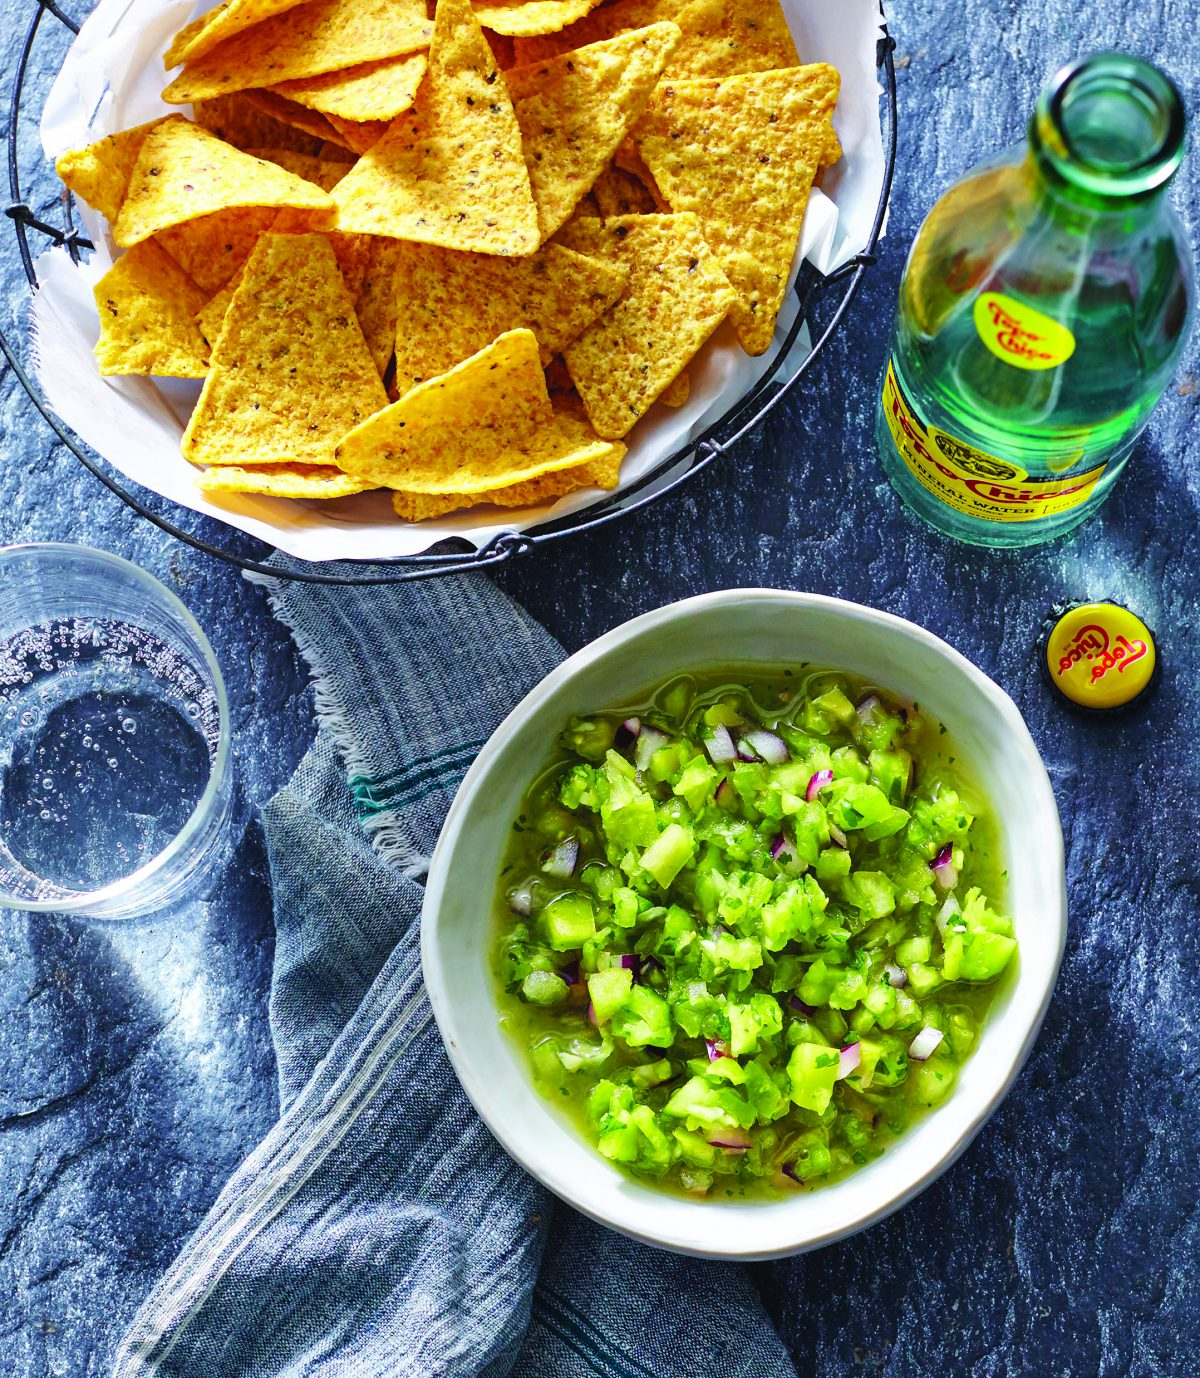 Use this Green Tomato Salsa Verde straight up as a sauce for enchiladas, or stir it into a cheese dip or your morning breakfast burrito filling! It's simply delicious.